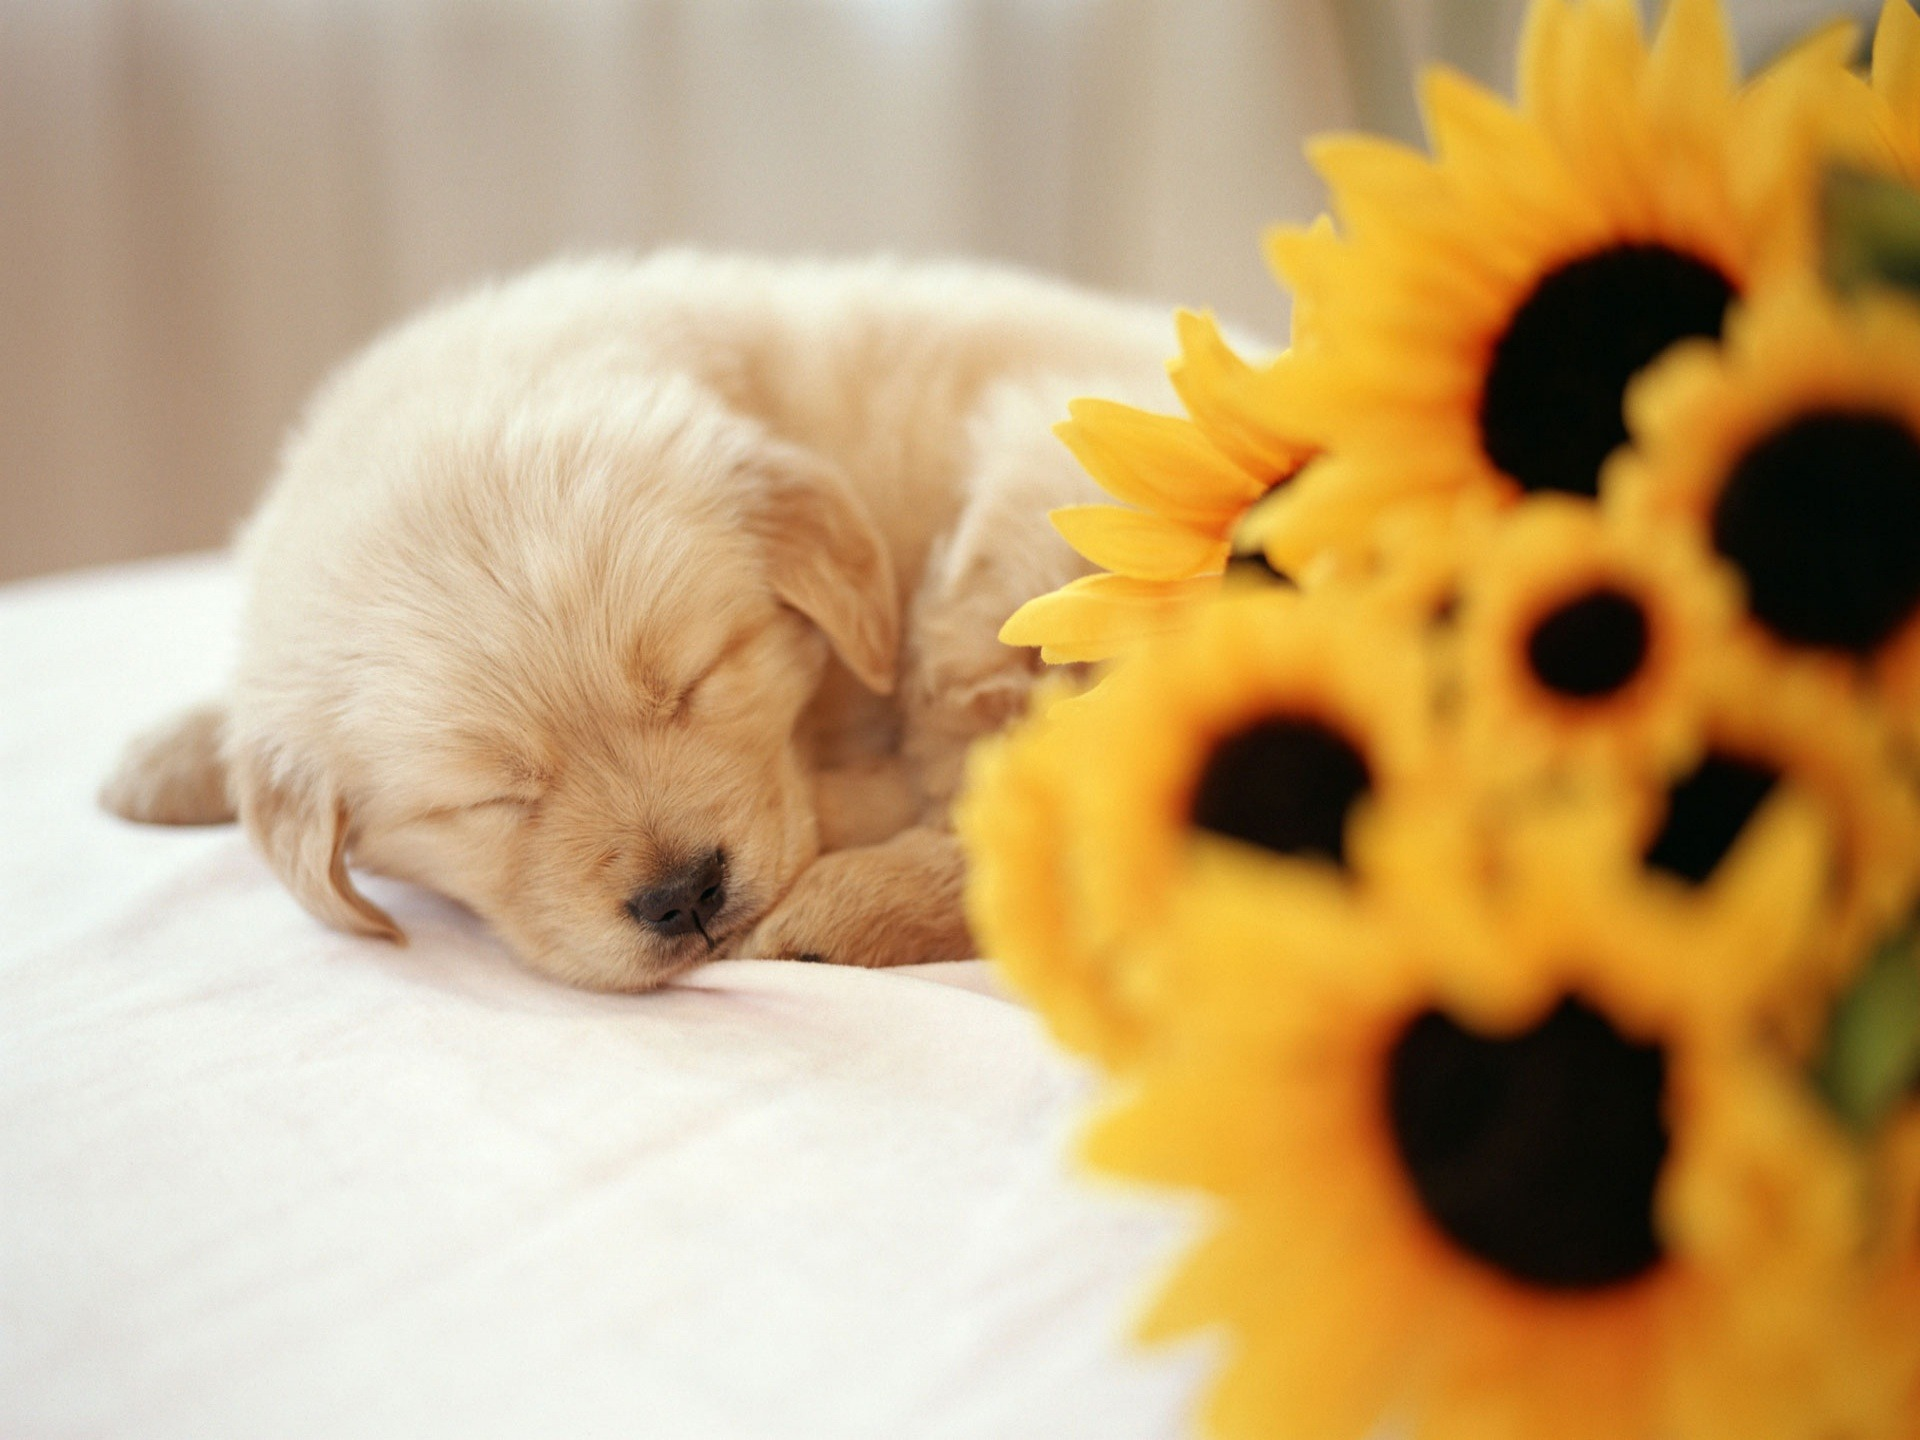 sleeping-puppy-wallpaper-dogs-animals_00429279